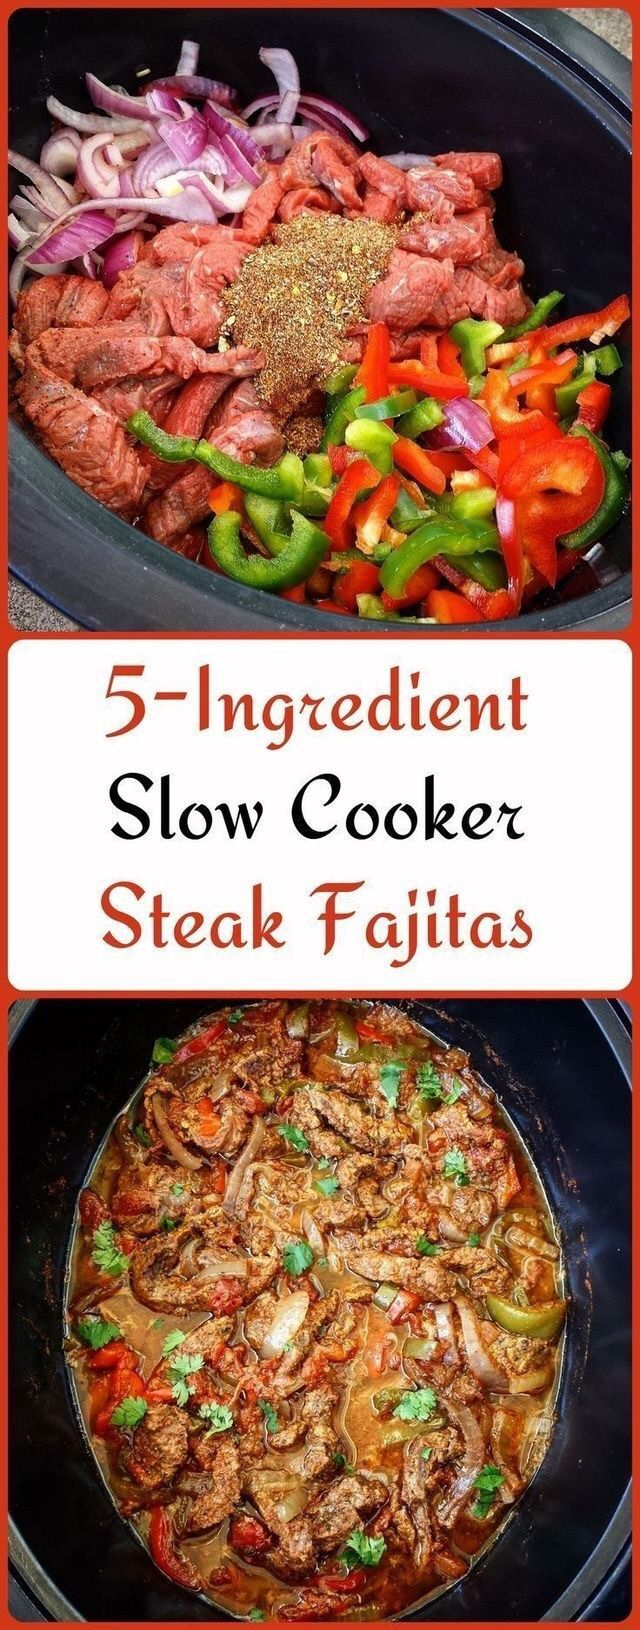 Photo of 5-Zutaten Slow Cooker / Instant Pot Steak Fajitas (Low-Carb, Paleo, Whole30